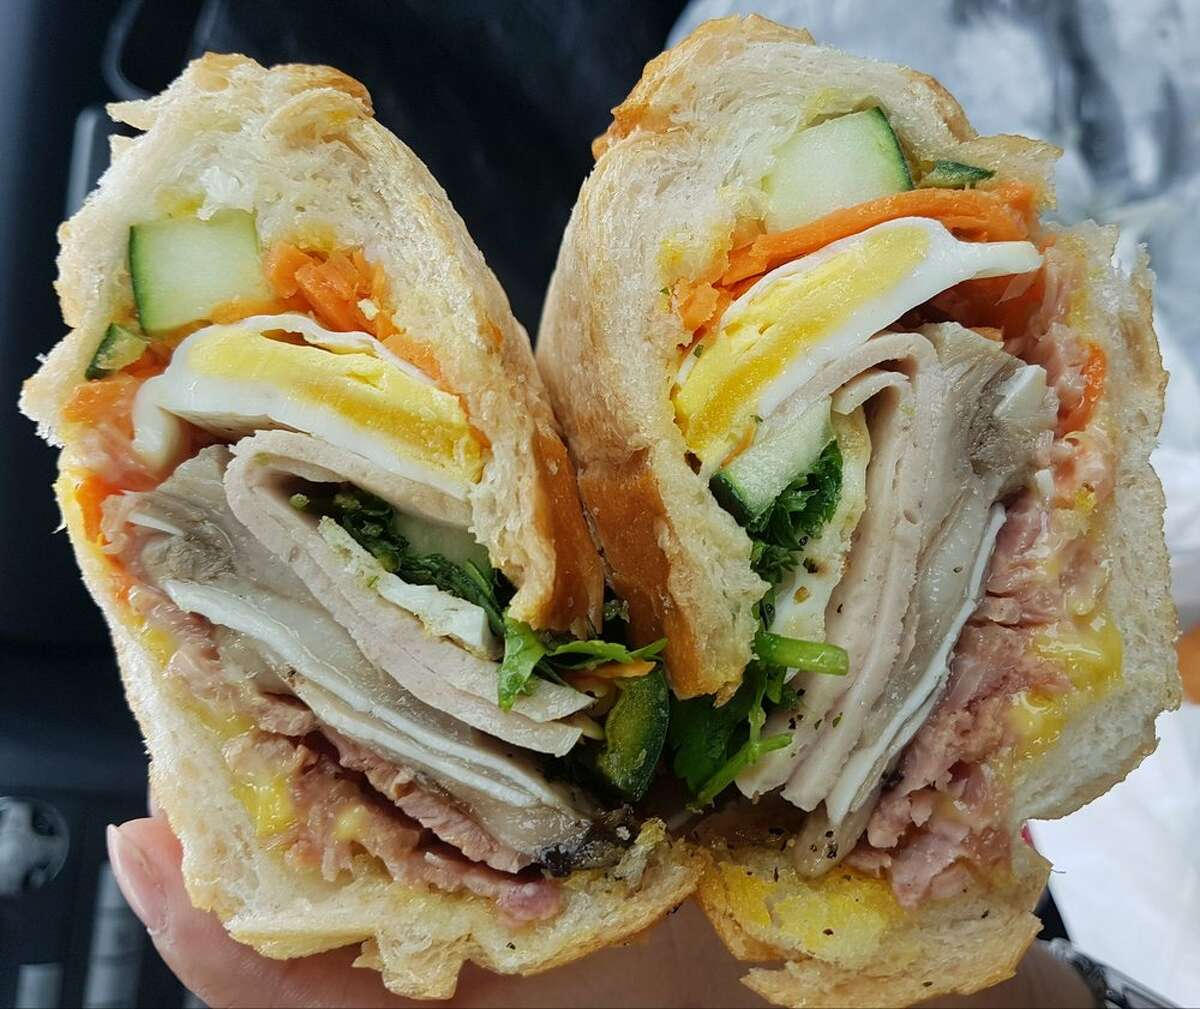 Don Cafe Sandwich 9300 Bellaire Blvd., Houston, TX 77036 Demerits: 32 Inspection Highlights:Observed slime in ice machine. Clean ice making machine to prevent contamination of the ice. Food condemnation. Photo: Yelp/Rachel L.